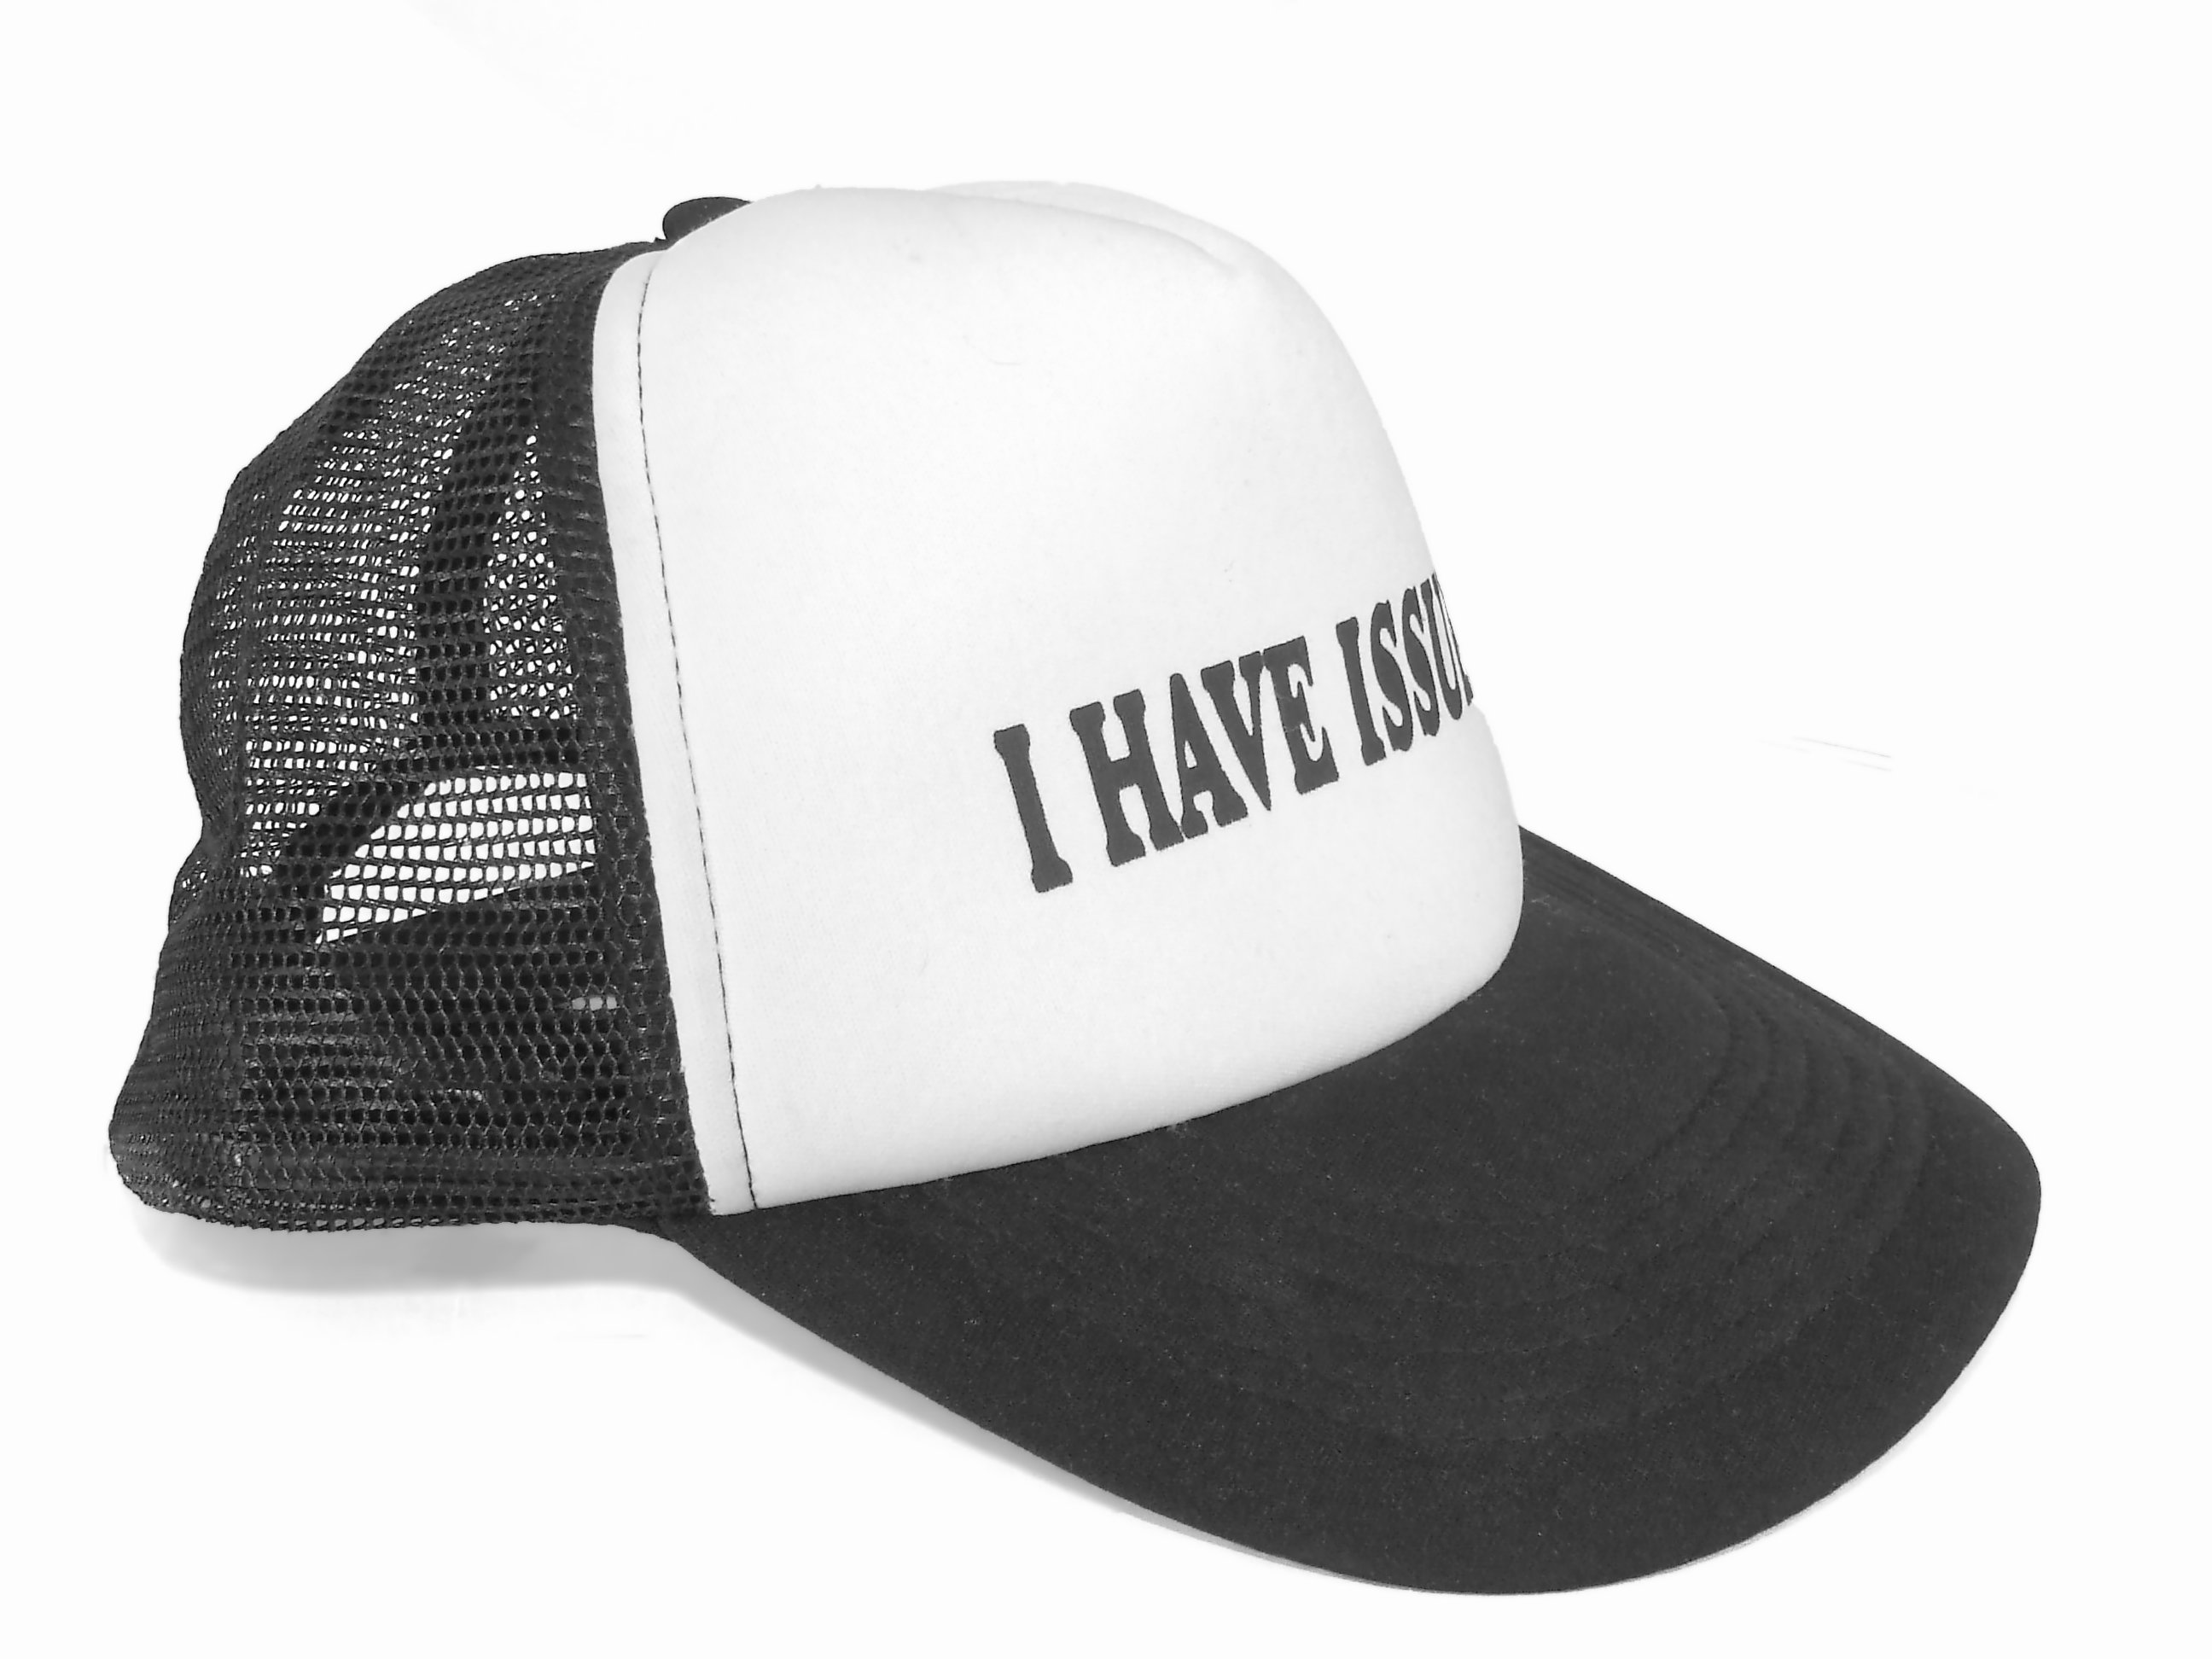 5da8c01b51731 Trucker hat - Wikipedia